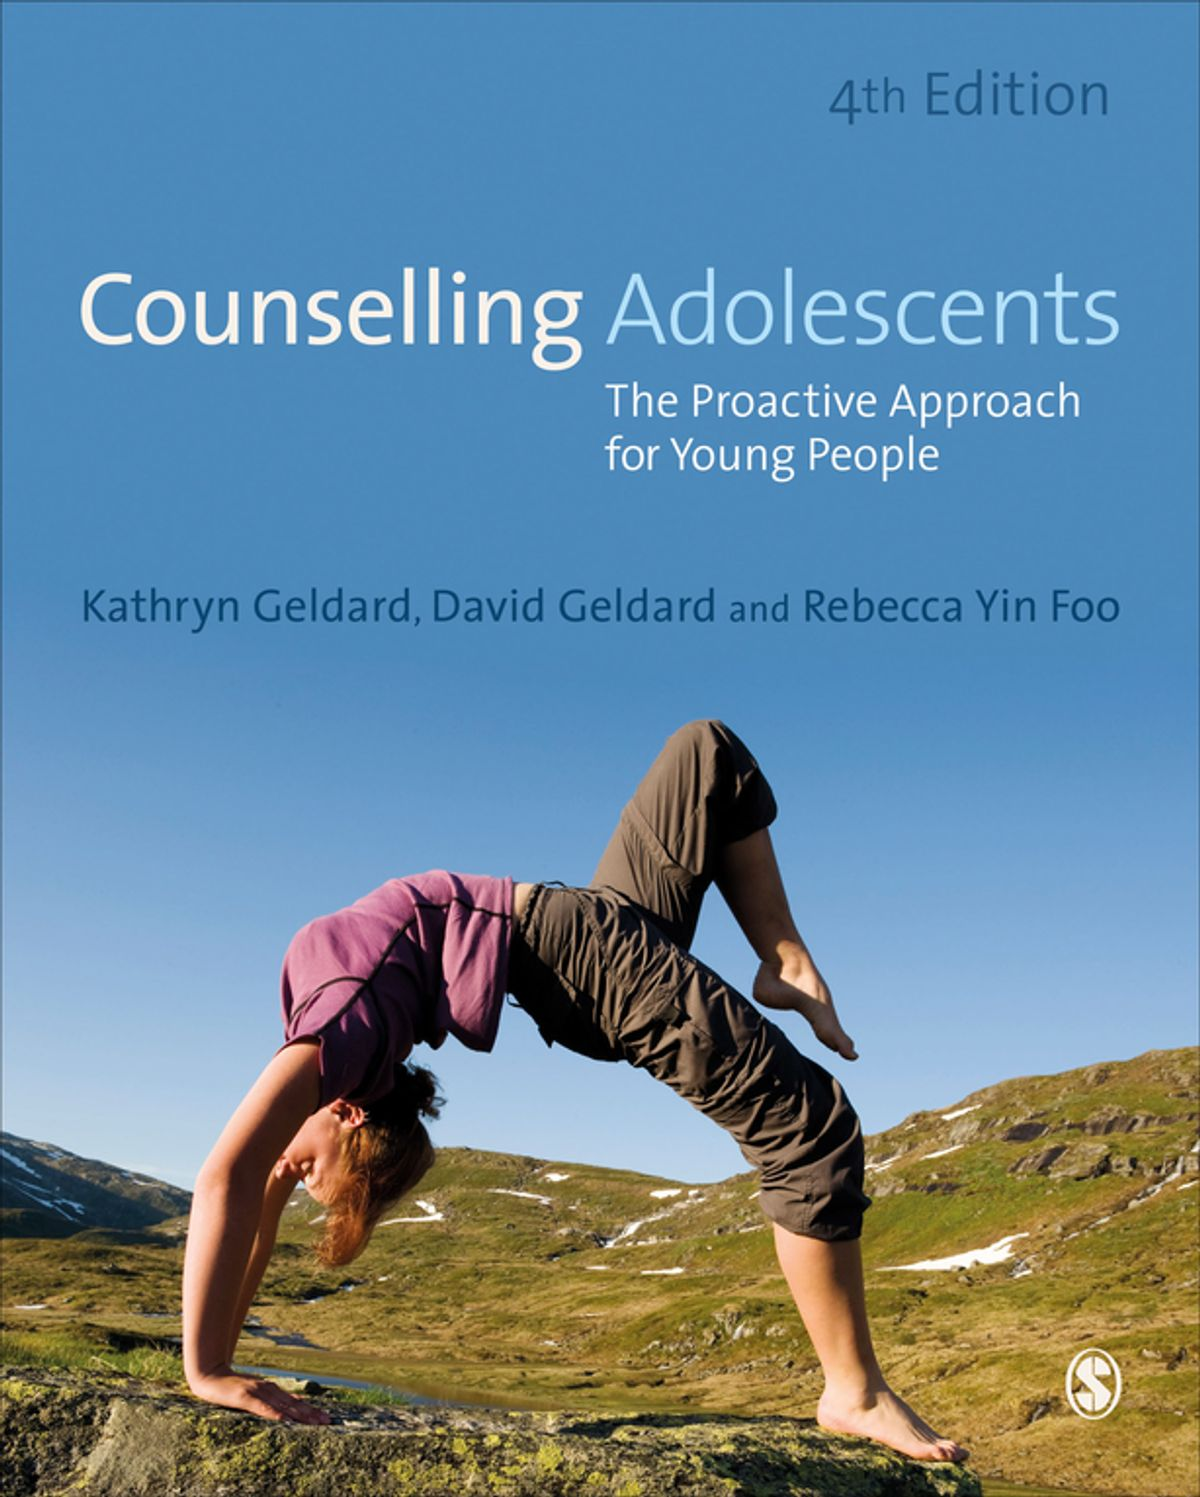 ethical issues in counseling adolescents Ethical issues in interviewing, counseling, and the use of psychological data with child and adolescent clients michael l lindsey introduction.